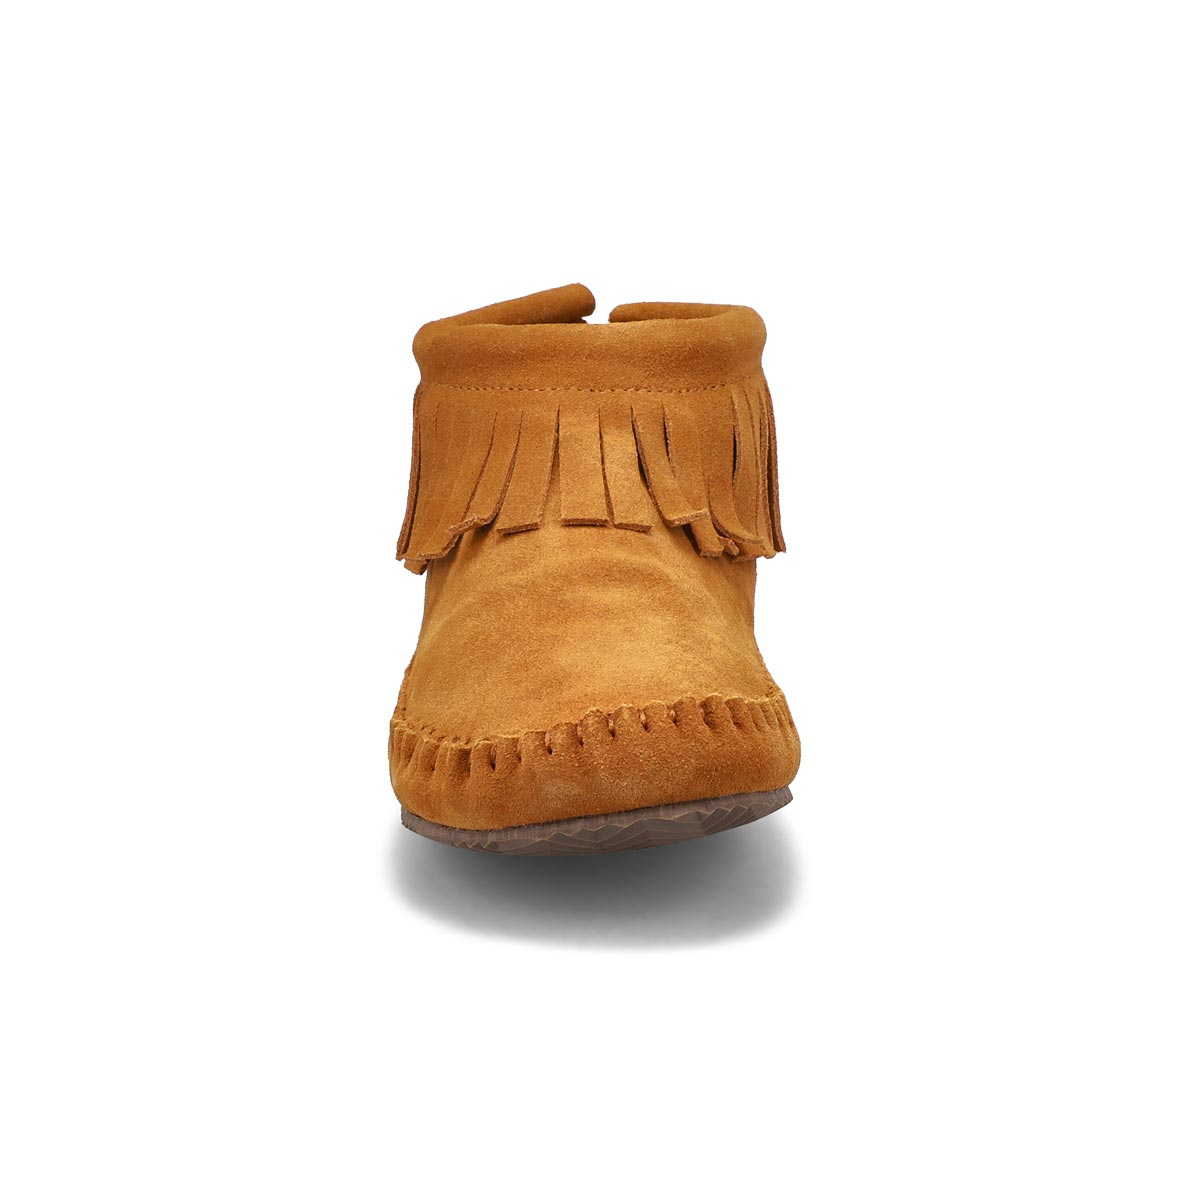 Lds DebraLo II ches suede back zip moc